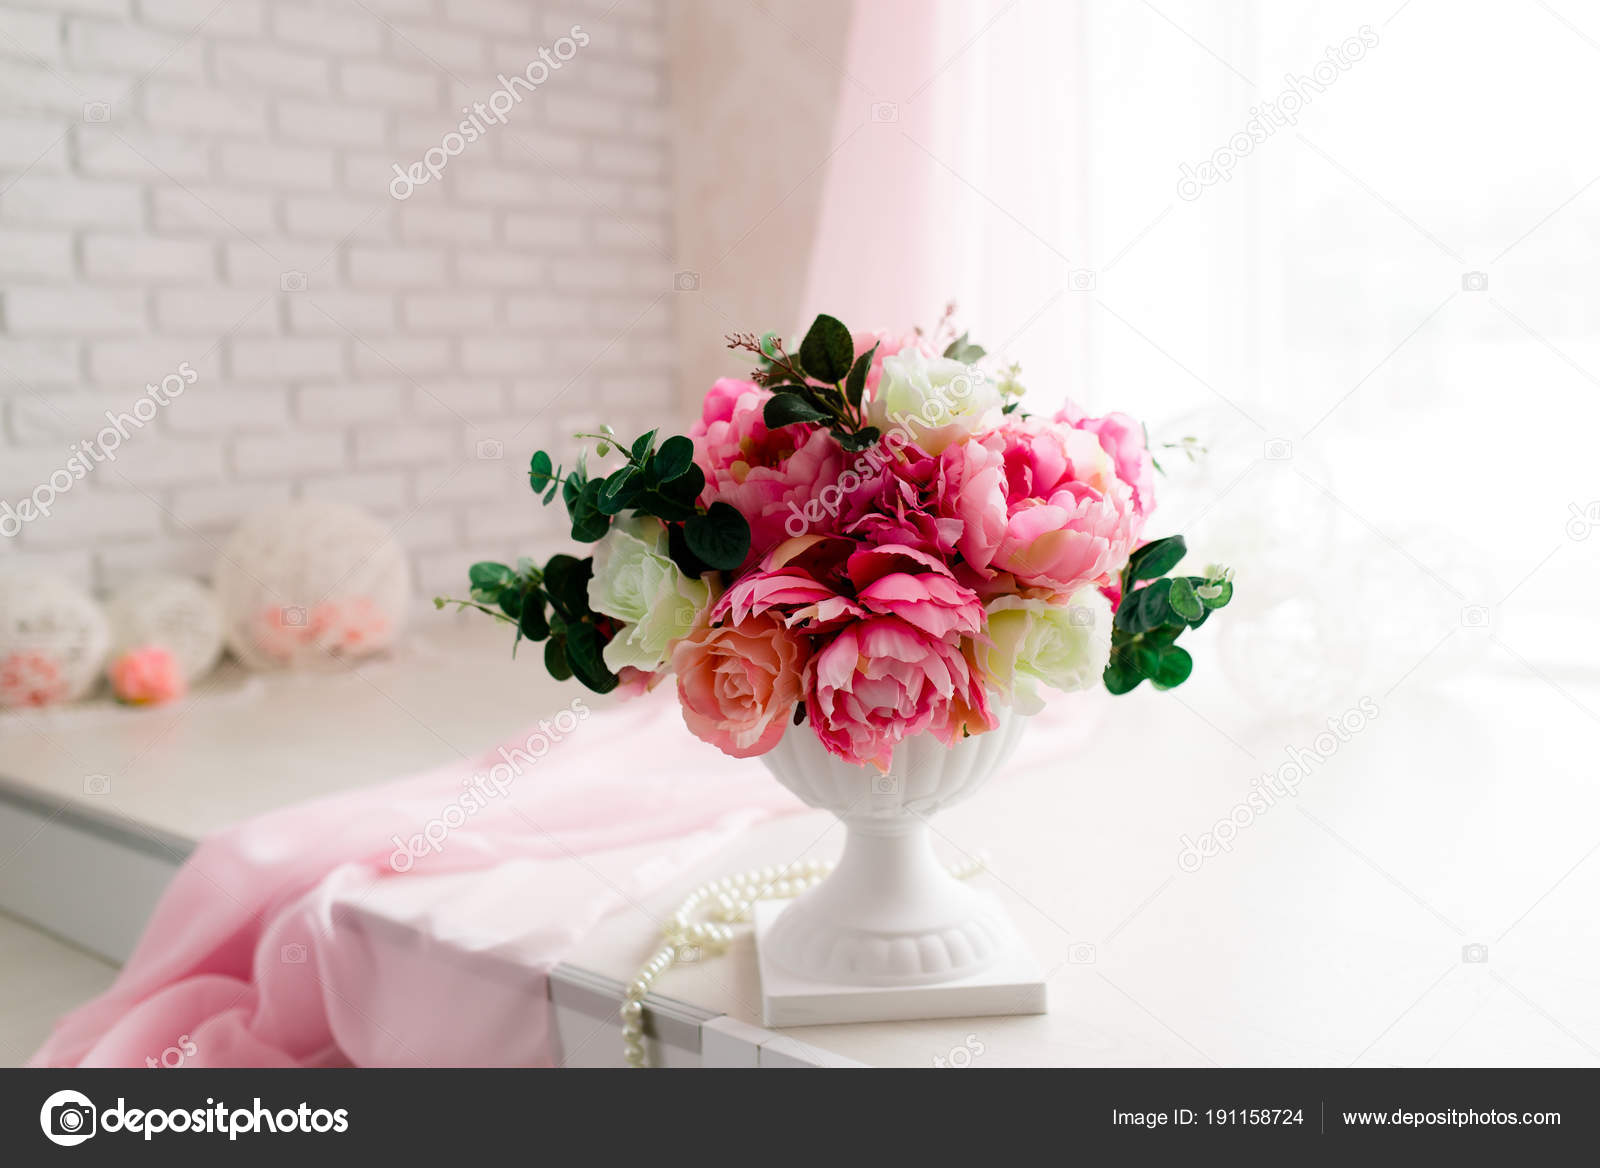 bouquet of peonies in a vase. pink peonies. transparent vase. white